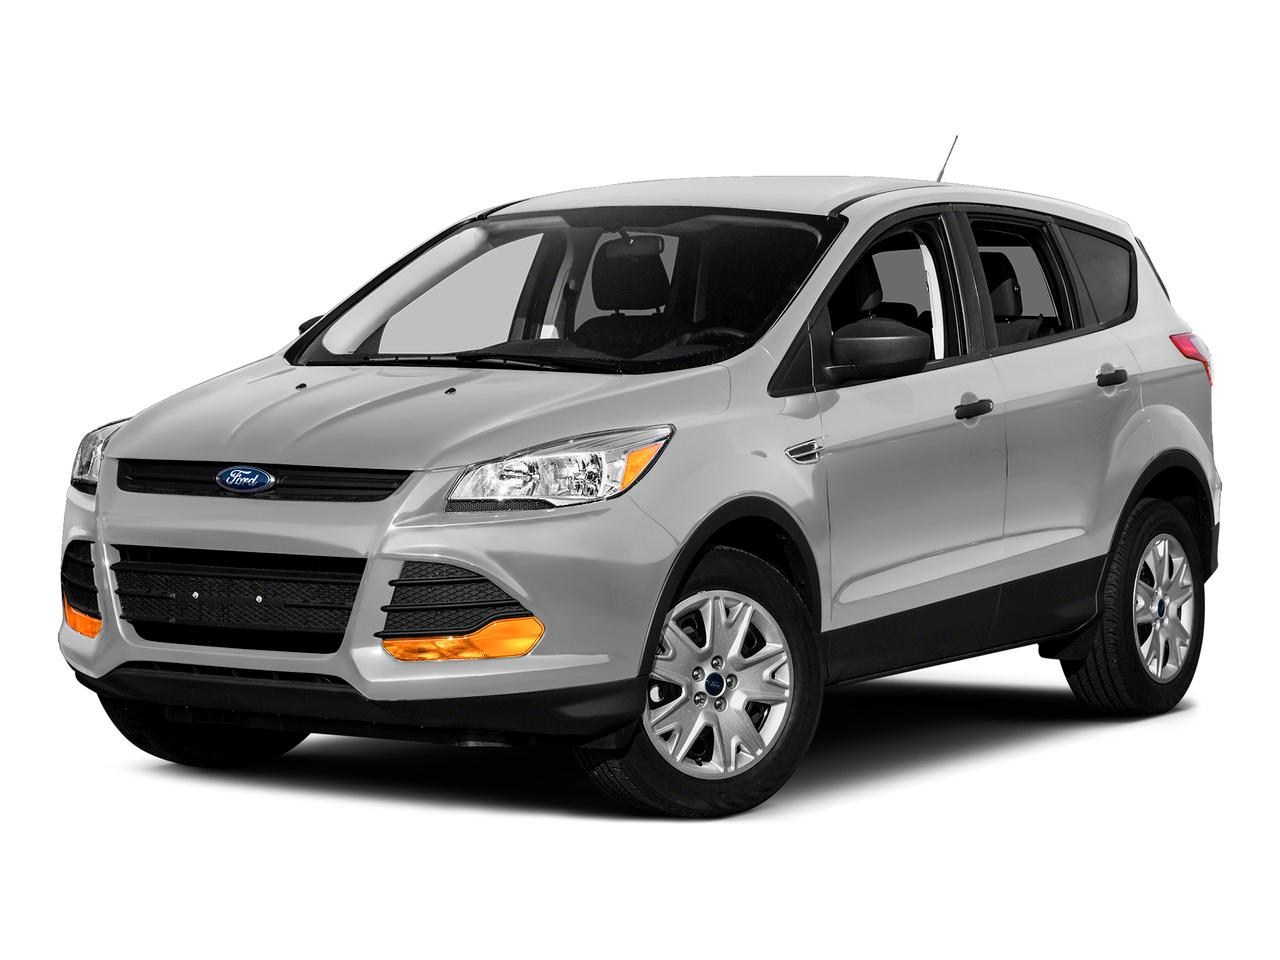 2015 Ford Escape Vehicle Photo in Spokane, WA 99207